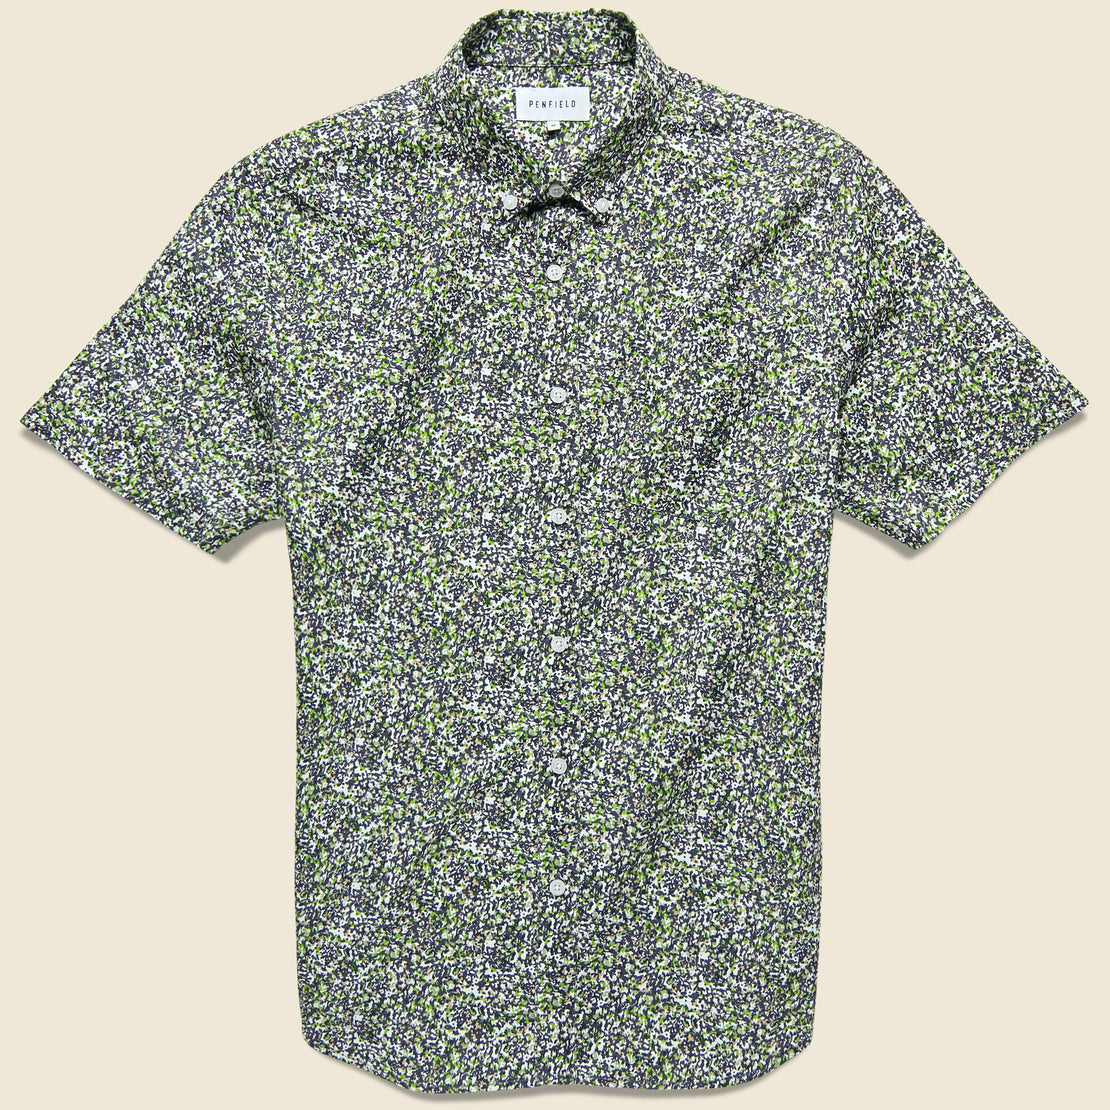 Penfield Tomah Shirt - Green